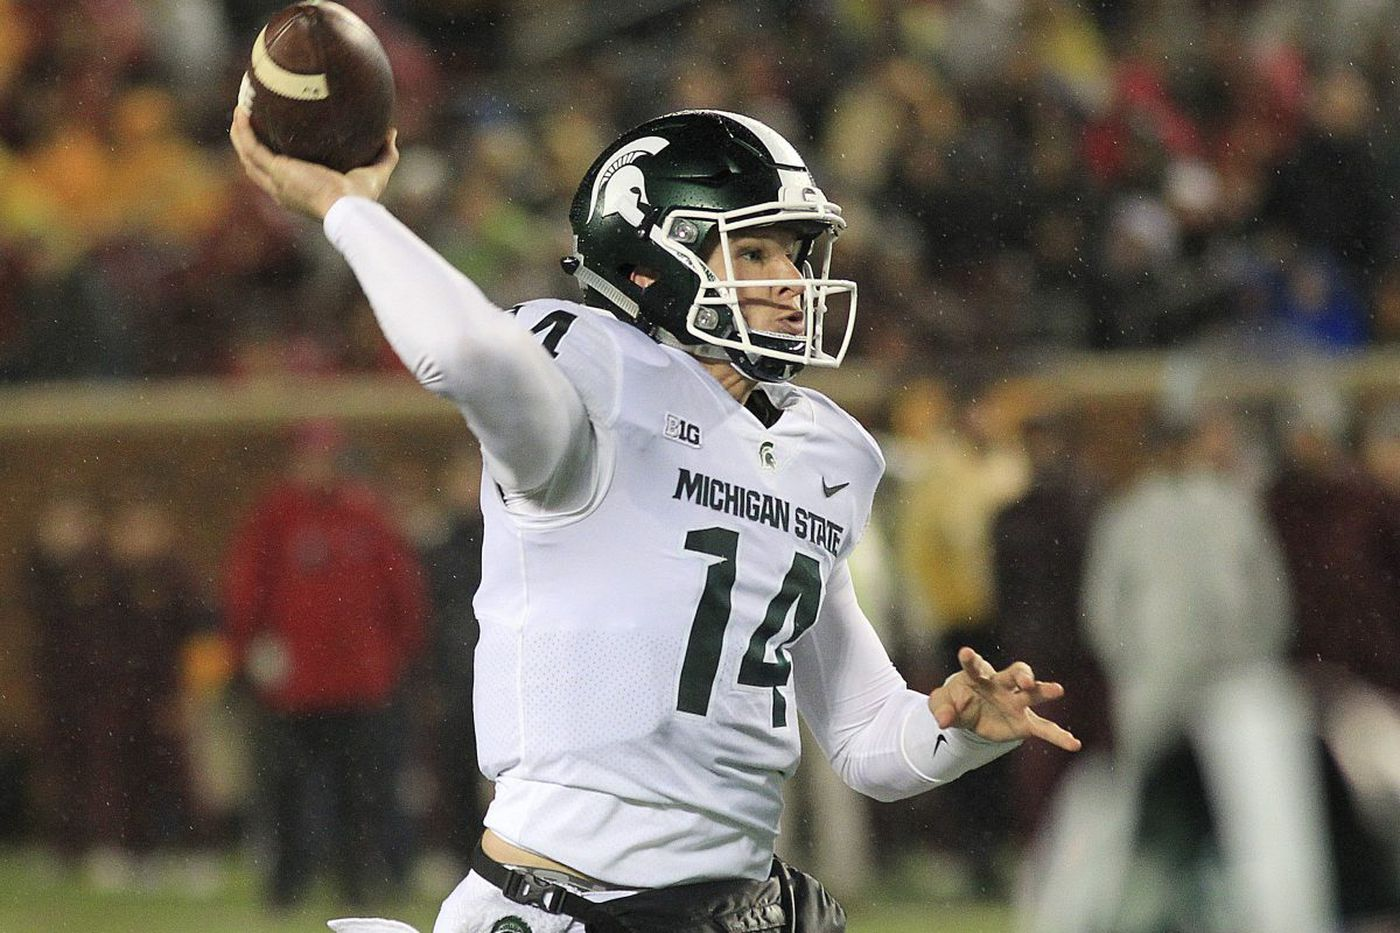 Preview: Penn State at Michigan State